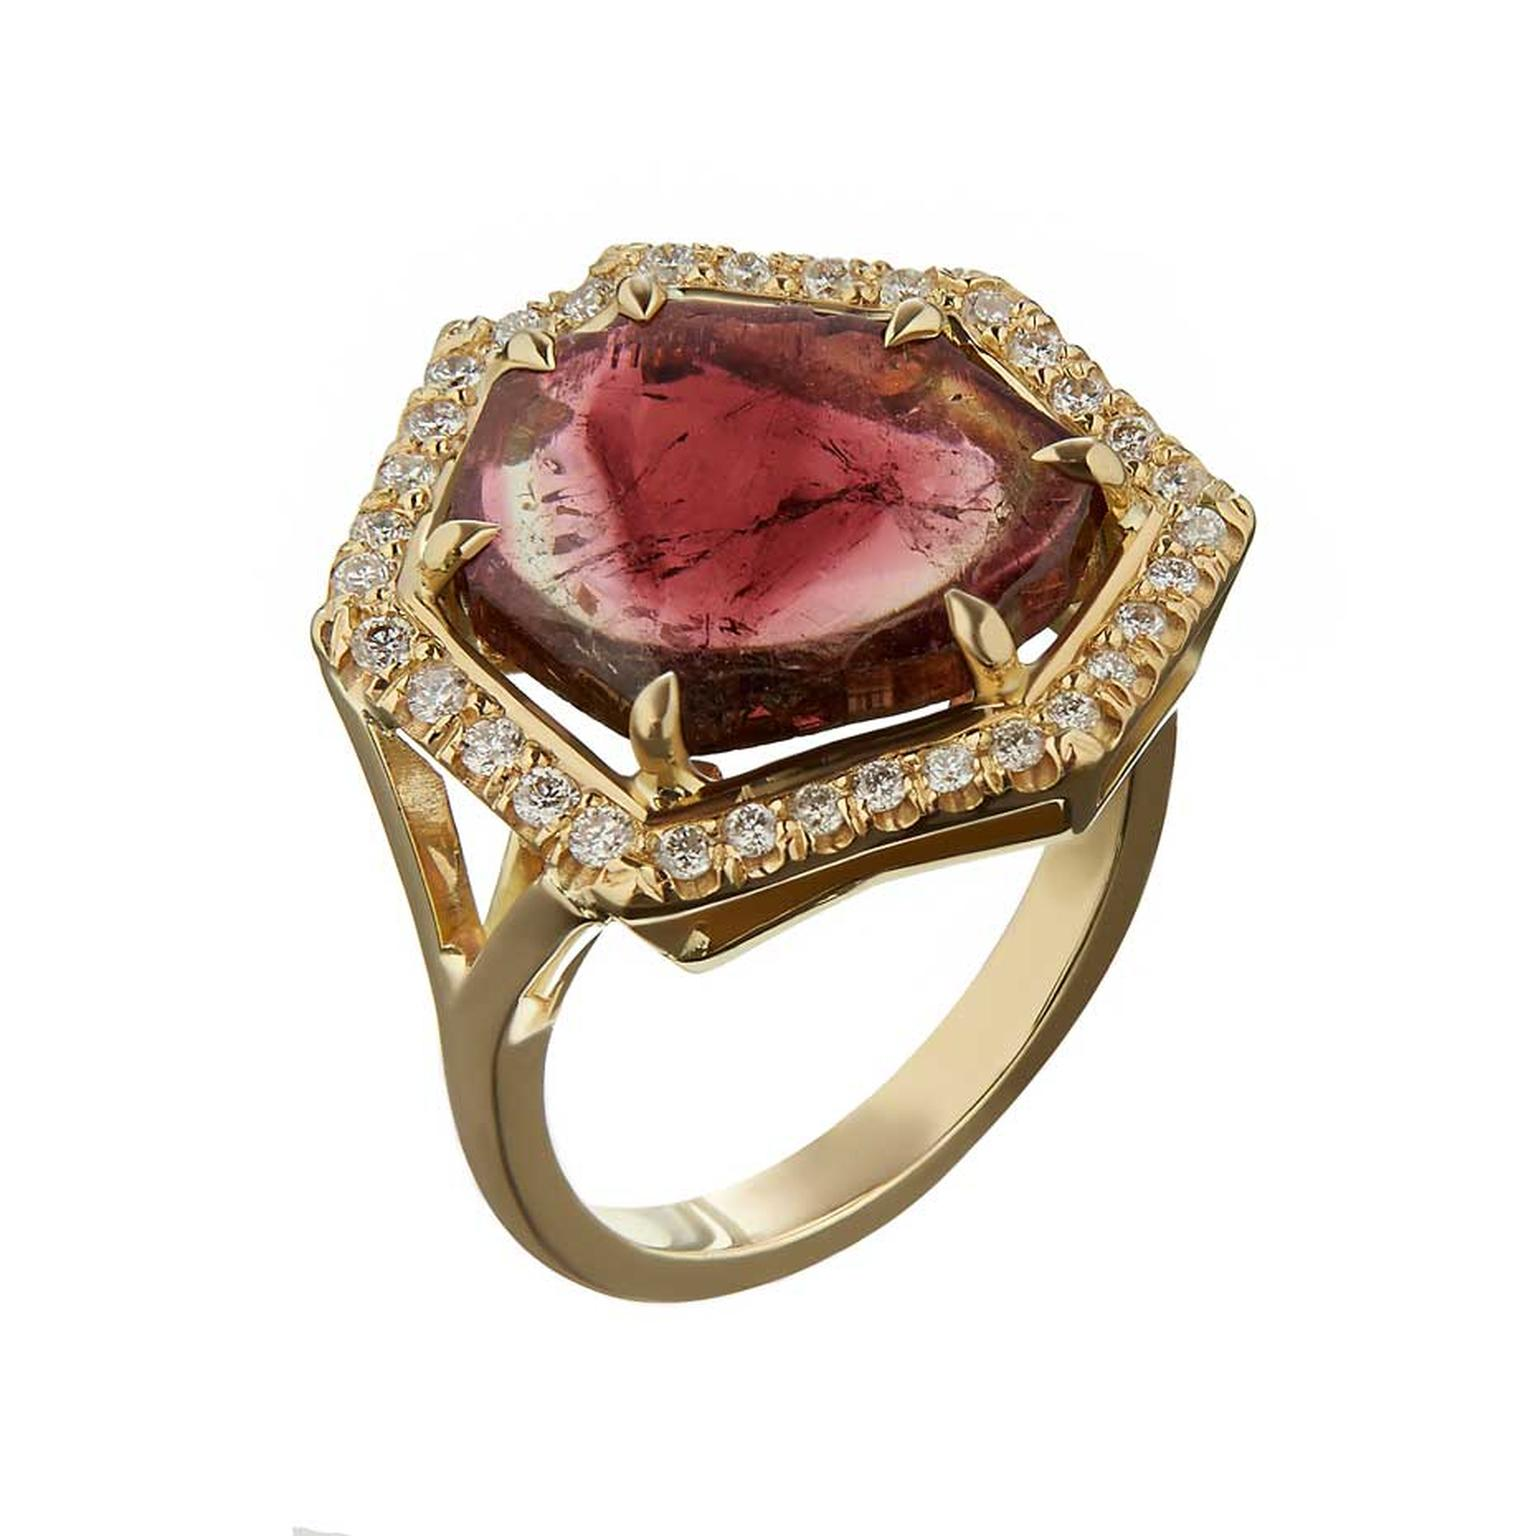 Tessa Packard Brighton Rocks ring in yellow gold, set with a watermelon tourmaline and diamonds.